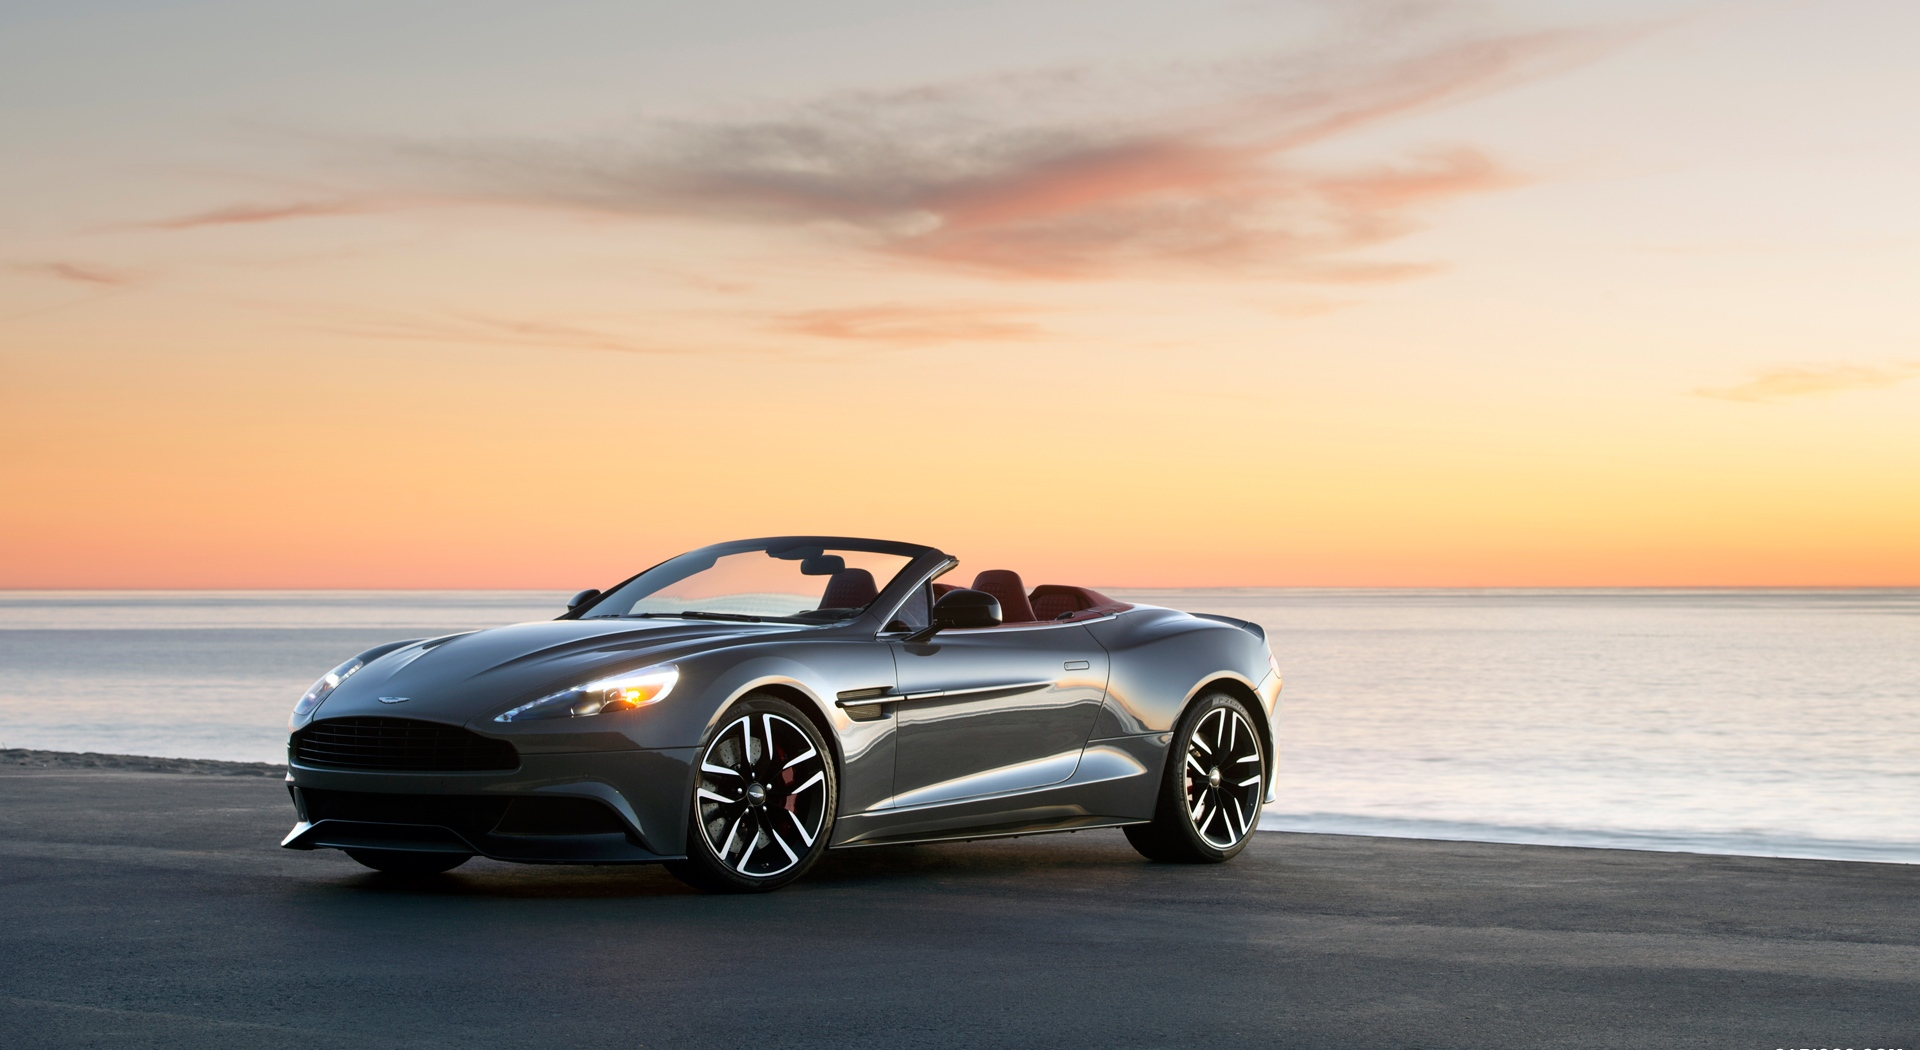 Aston Martin Vanquish Wallpapers sunrise